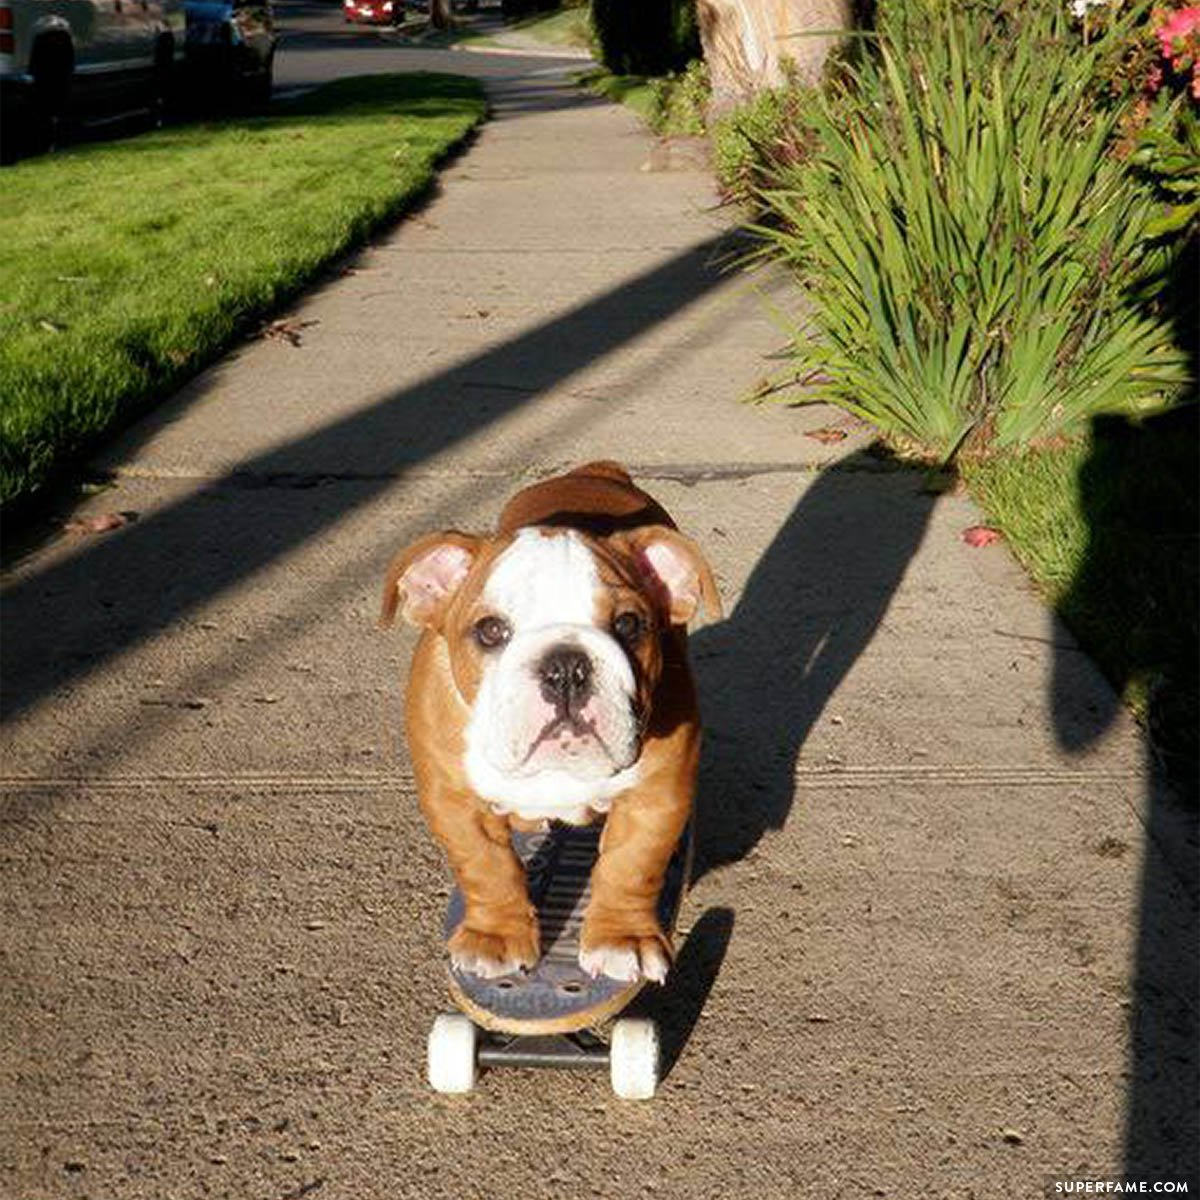 Tillman the dog on a skateboard.